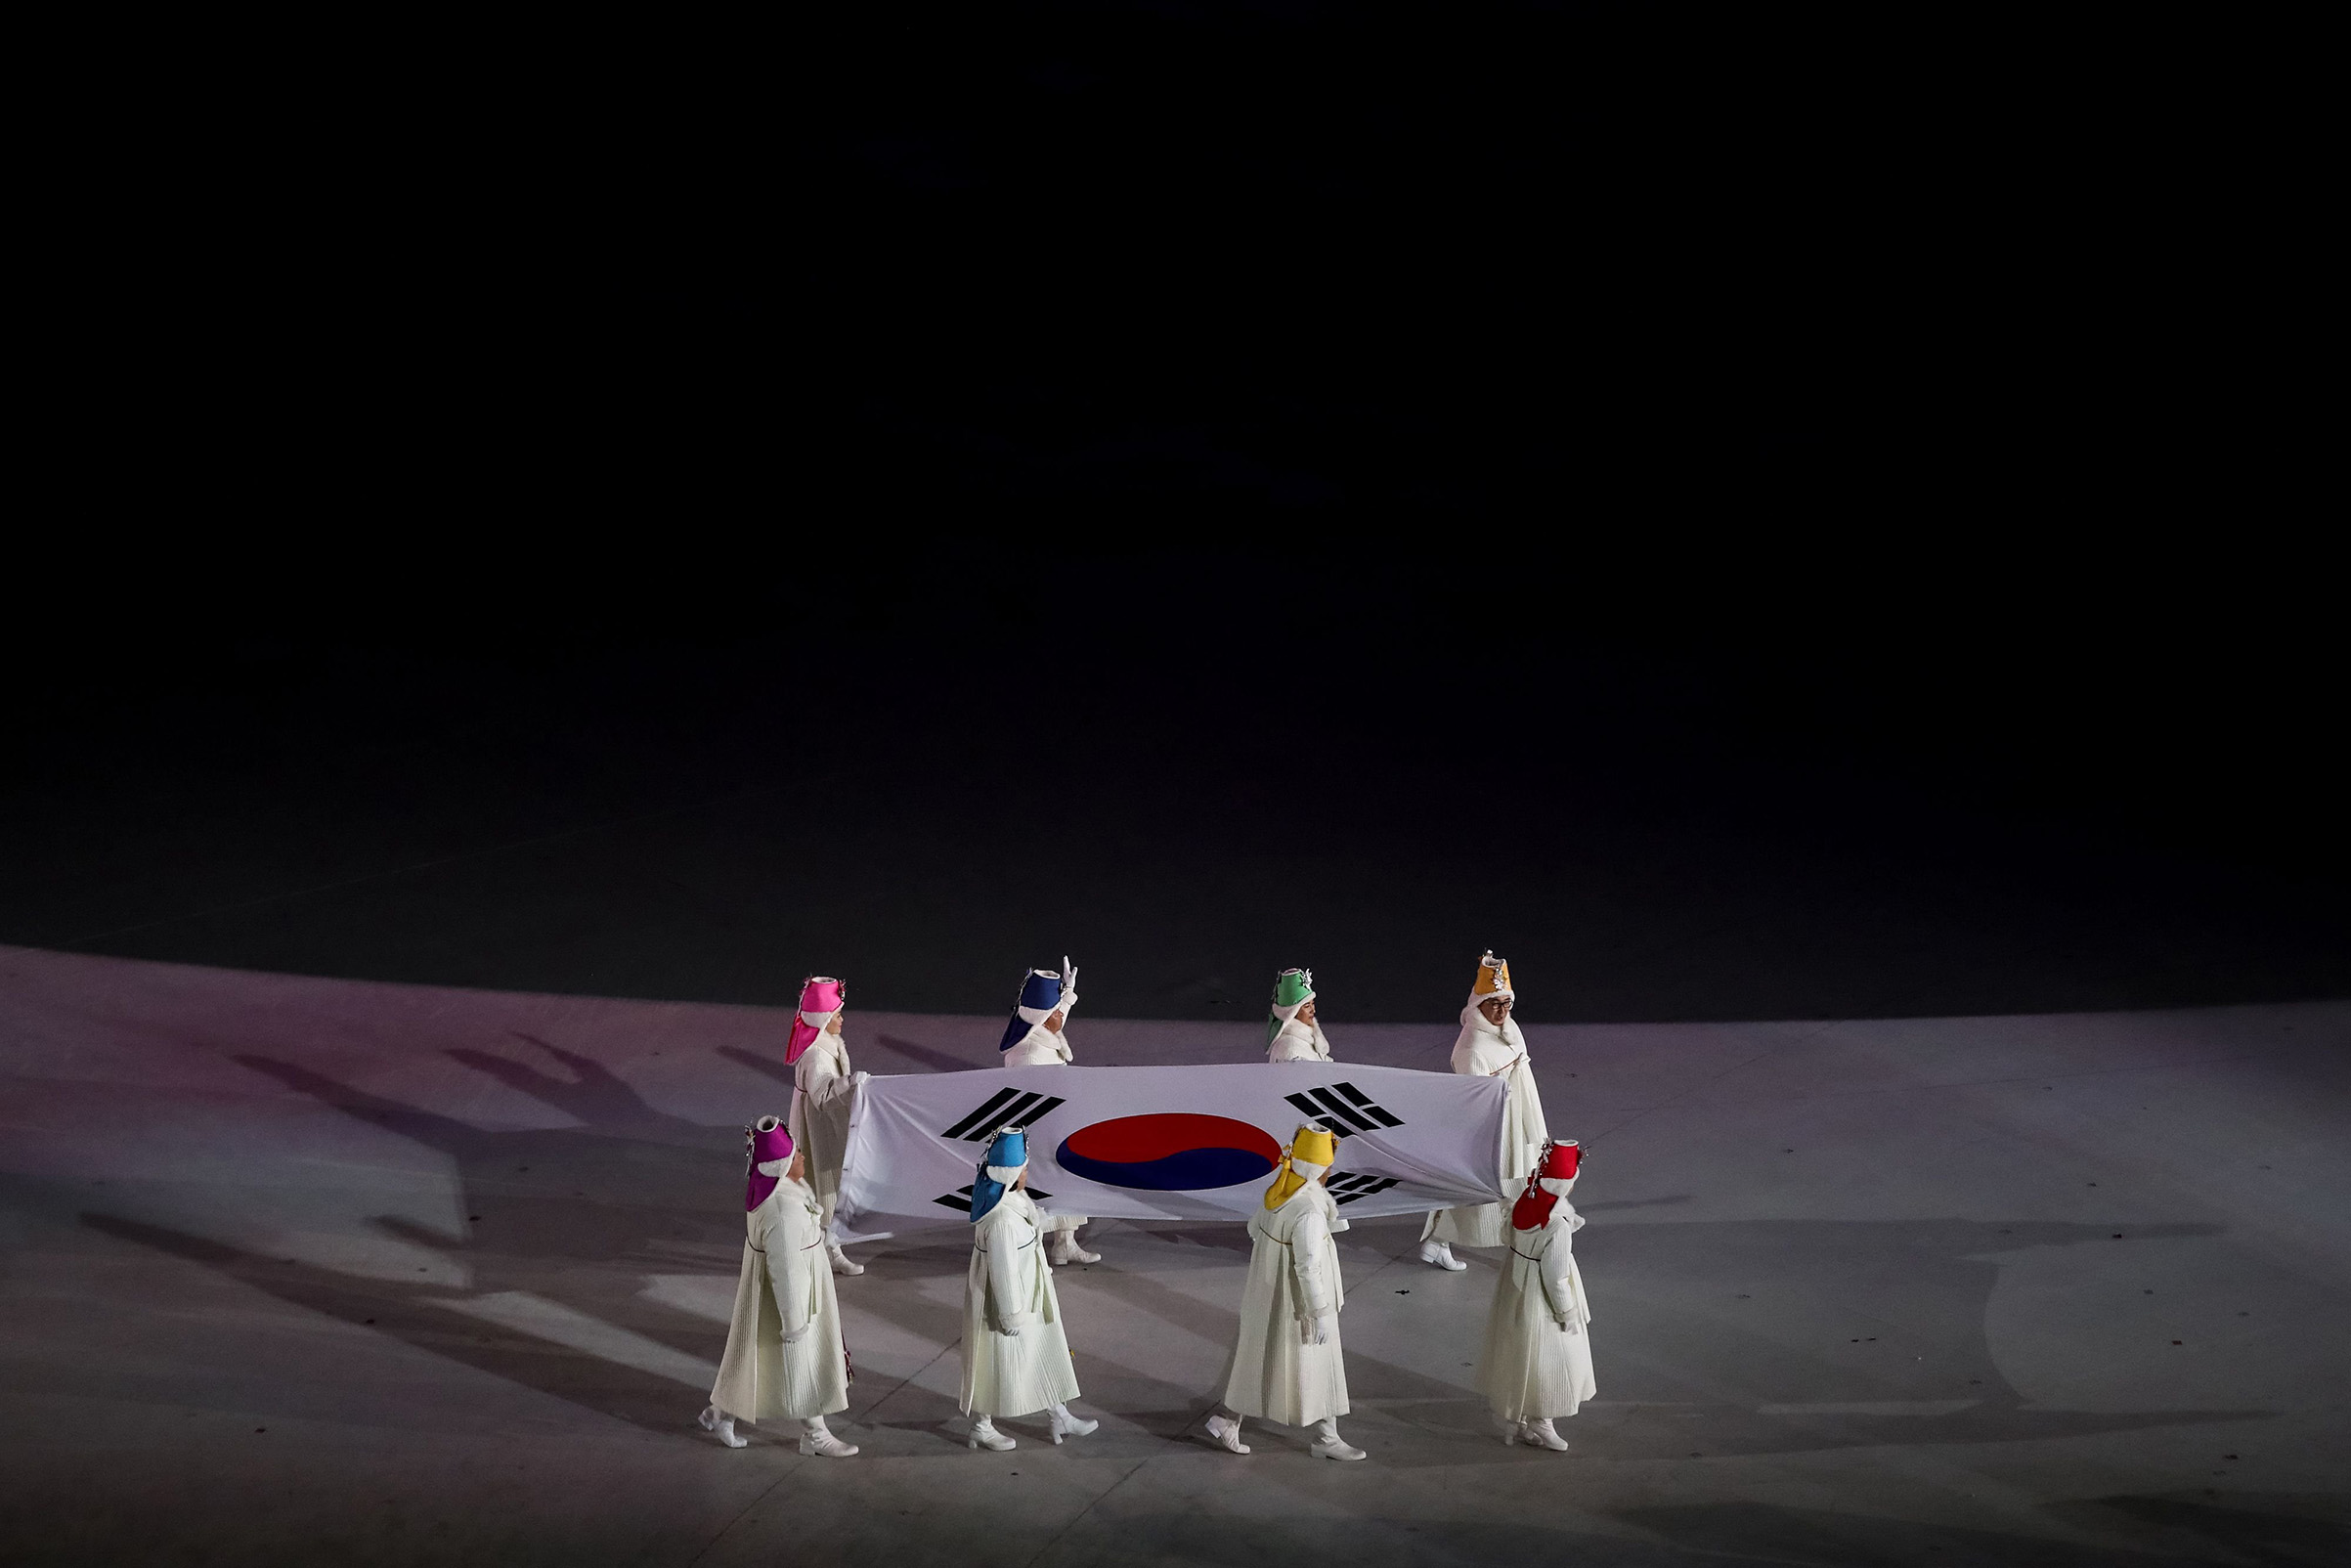 Former South Korean Olympians carry the South Korean flag during the opening ceremony of the Pyeongchang 2018 Winter Olympic Games.